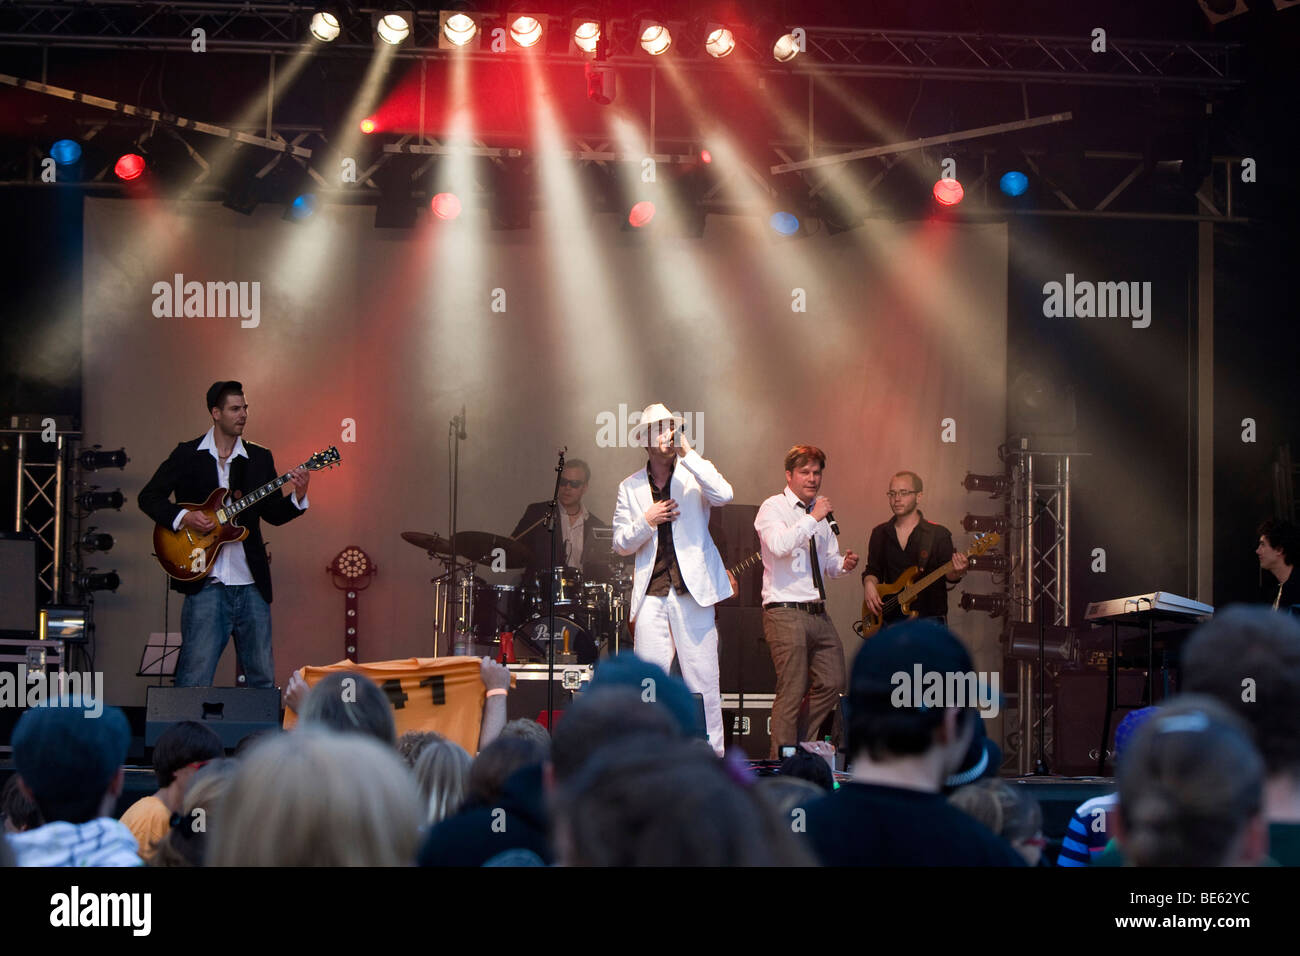 The Swiss rap and funk band Maenner am Meer live at soundcheck, Open Air festival in Sempach-Neuenkirch, Switzerland, - Stock Image